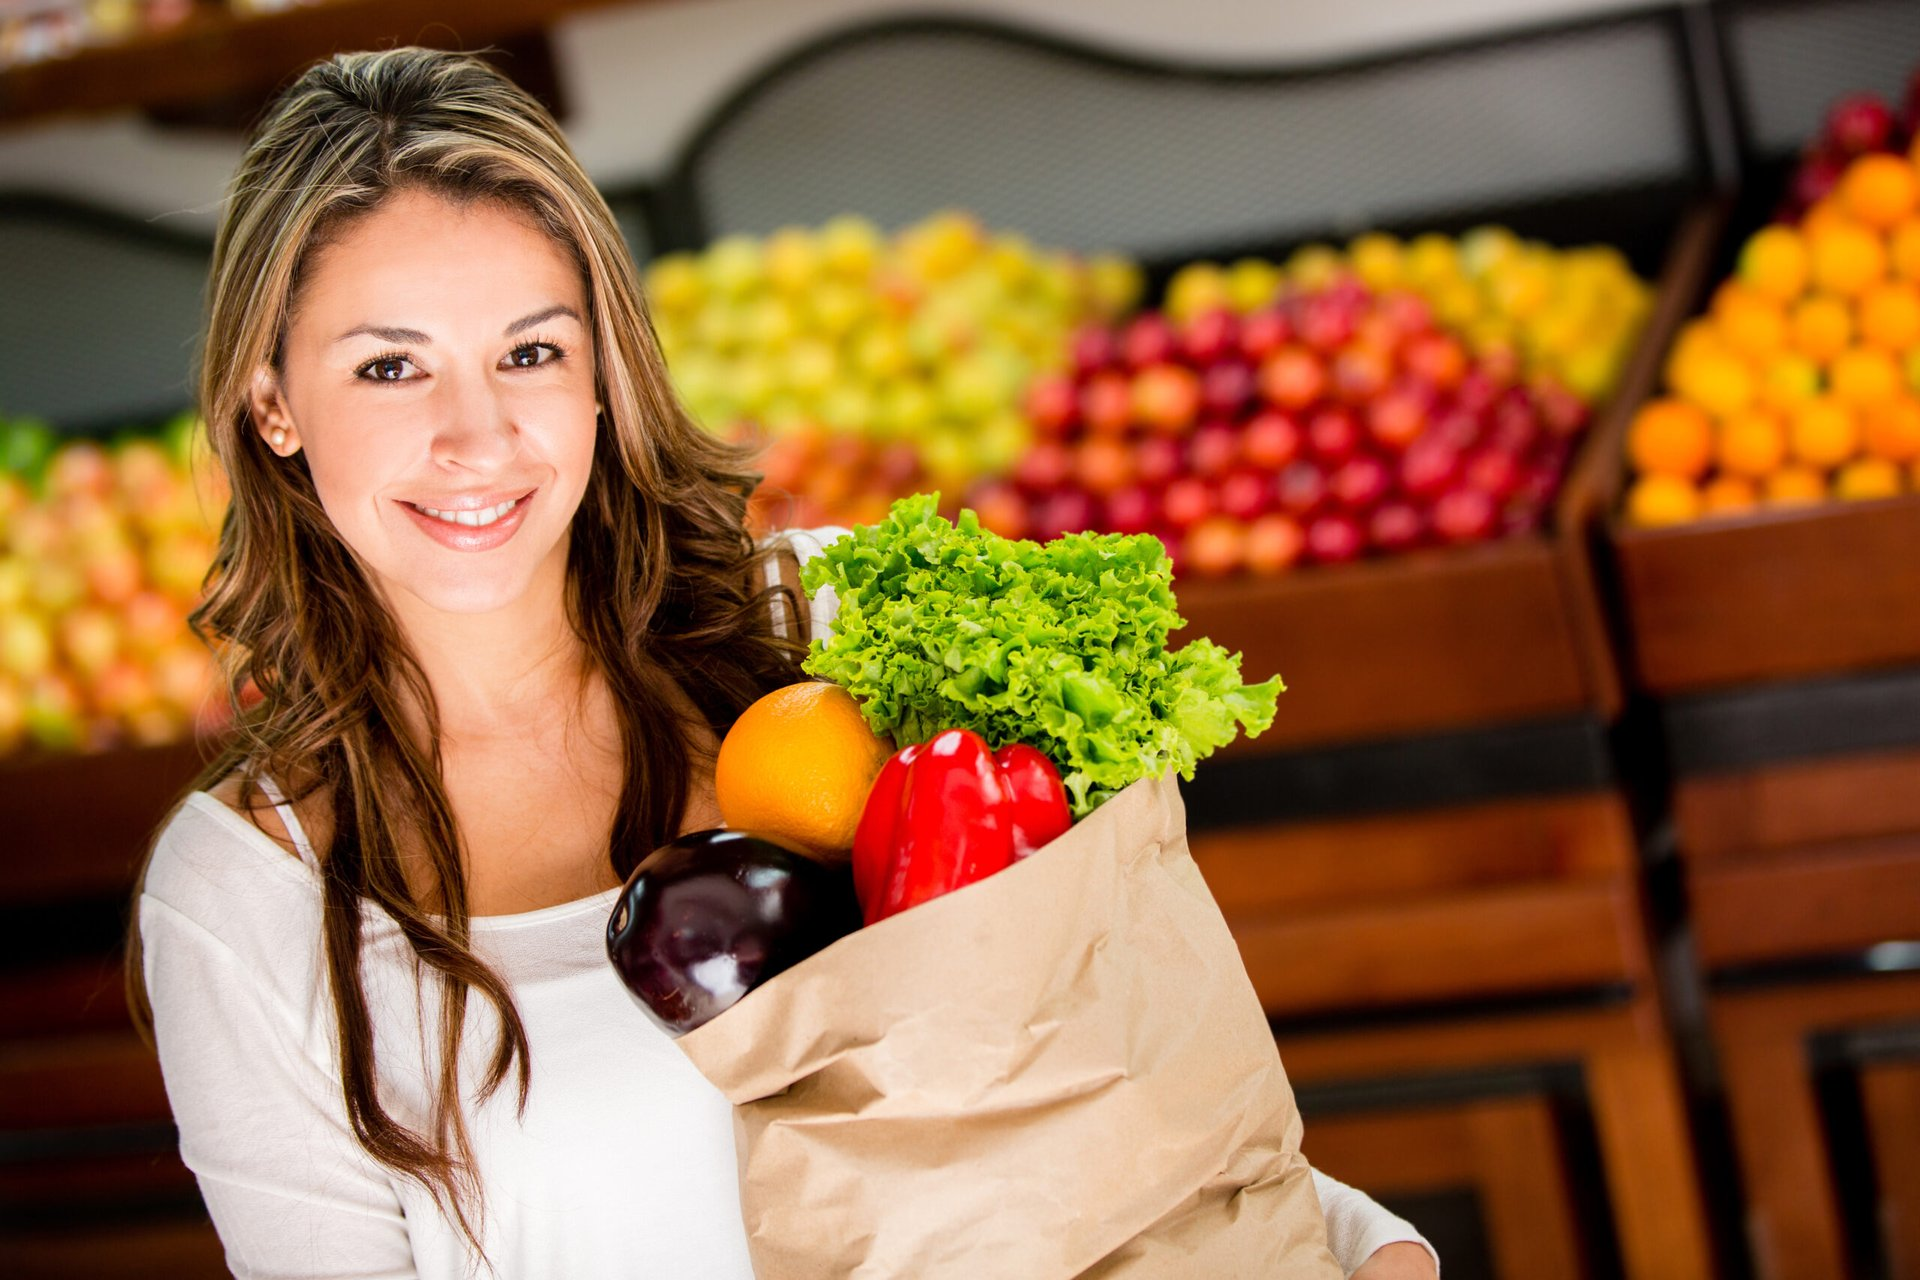 Woman who is grocery shopping